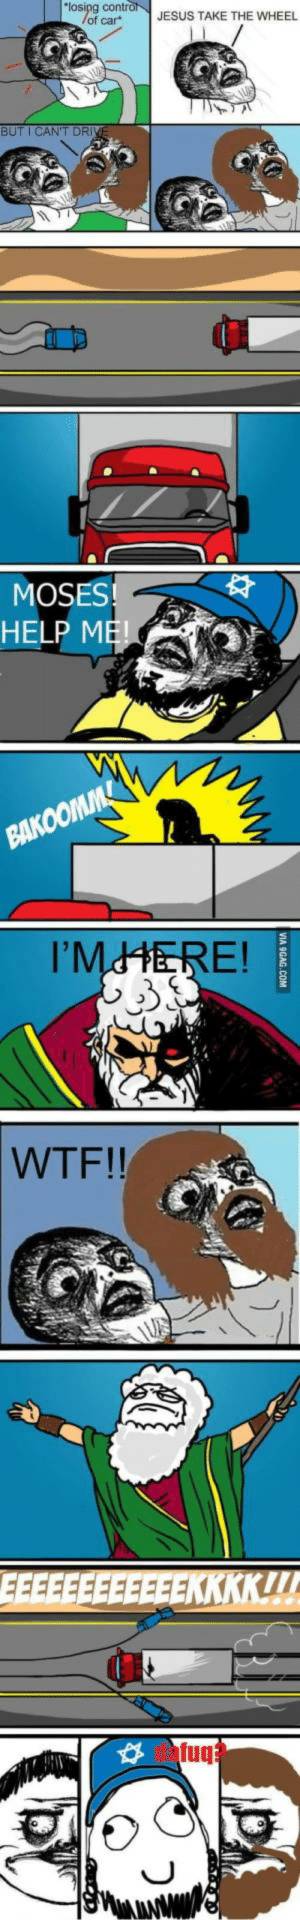 "A good old rage comic. Thx to @justsayingoida for this share in comments.: ""losipg contro  /of car  JESUS TAKE THE WHEEL  BUT I CAN'T DRIV  MOSES!  HELP ME!  BAKOOMM  I'MHERE!  WTF!!  EEKKKK!  fuq  VIA 9GAG.COM A good old rage comic. Thx to @justsayingoida for this share in comments."